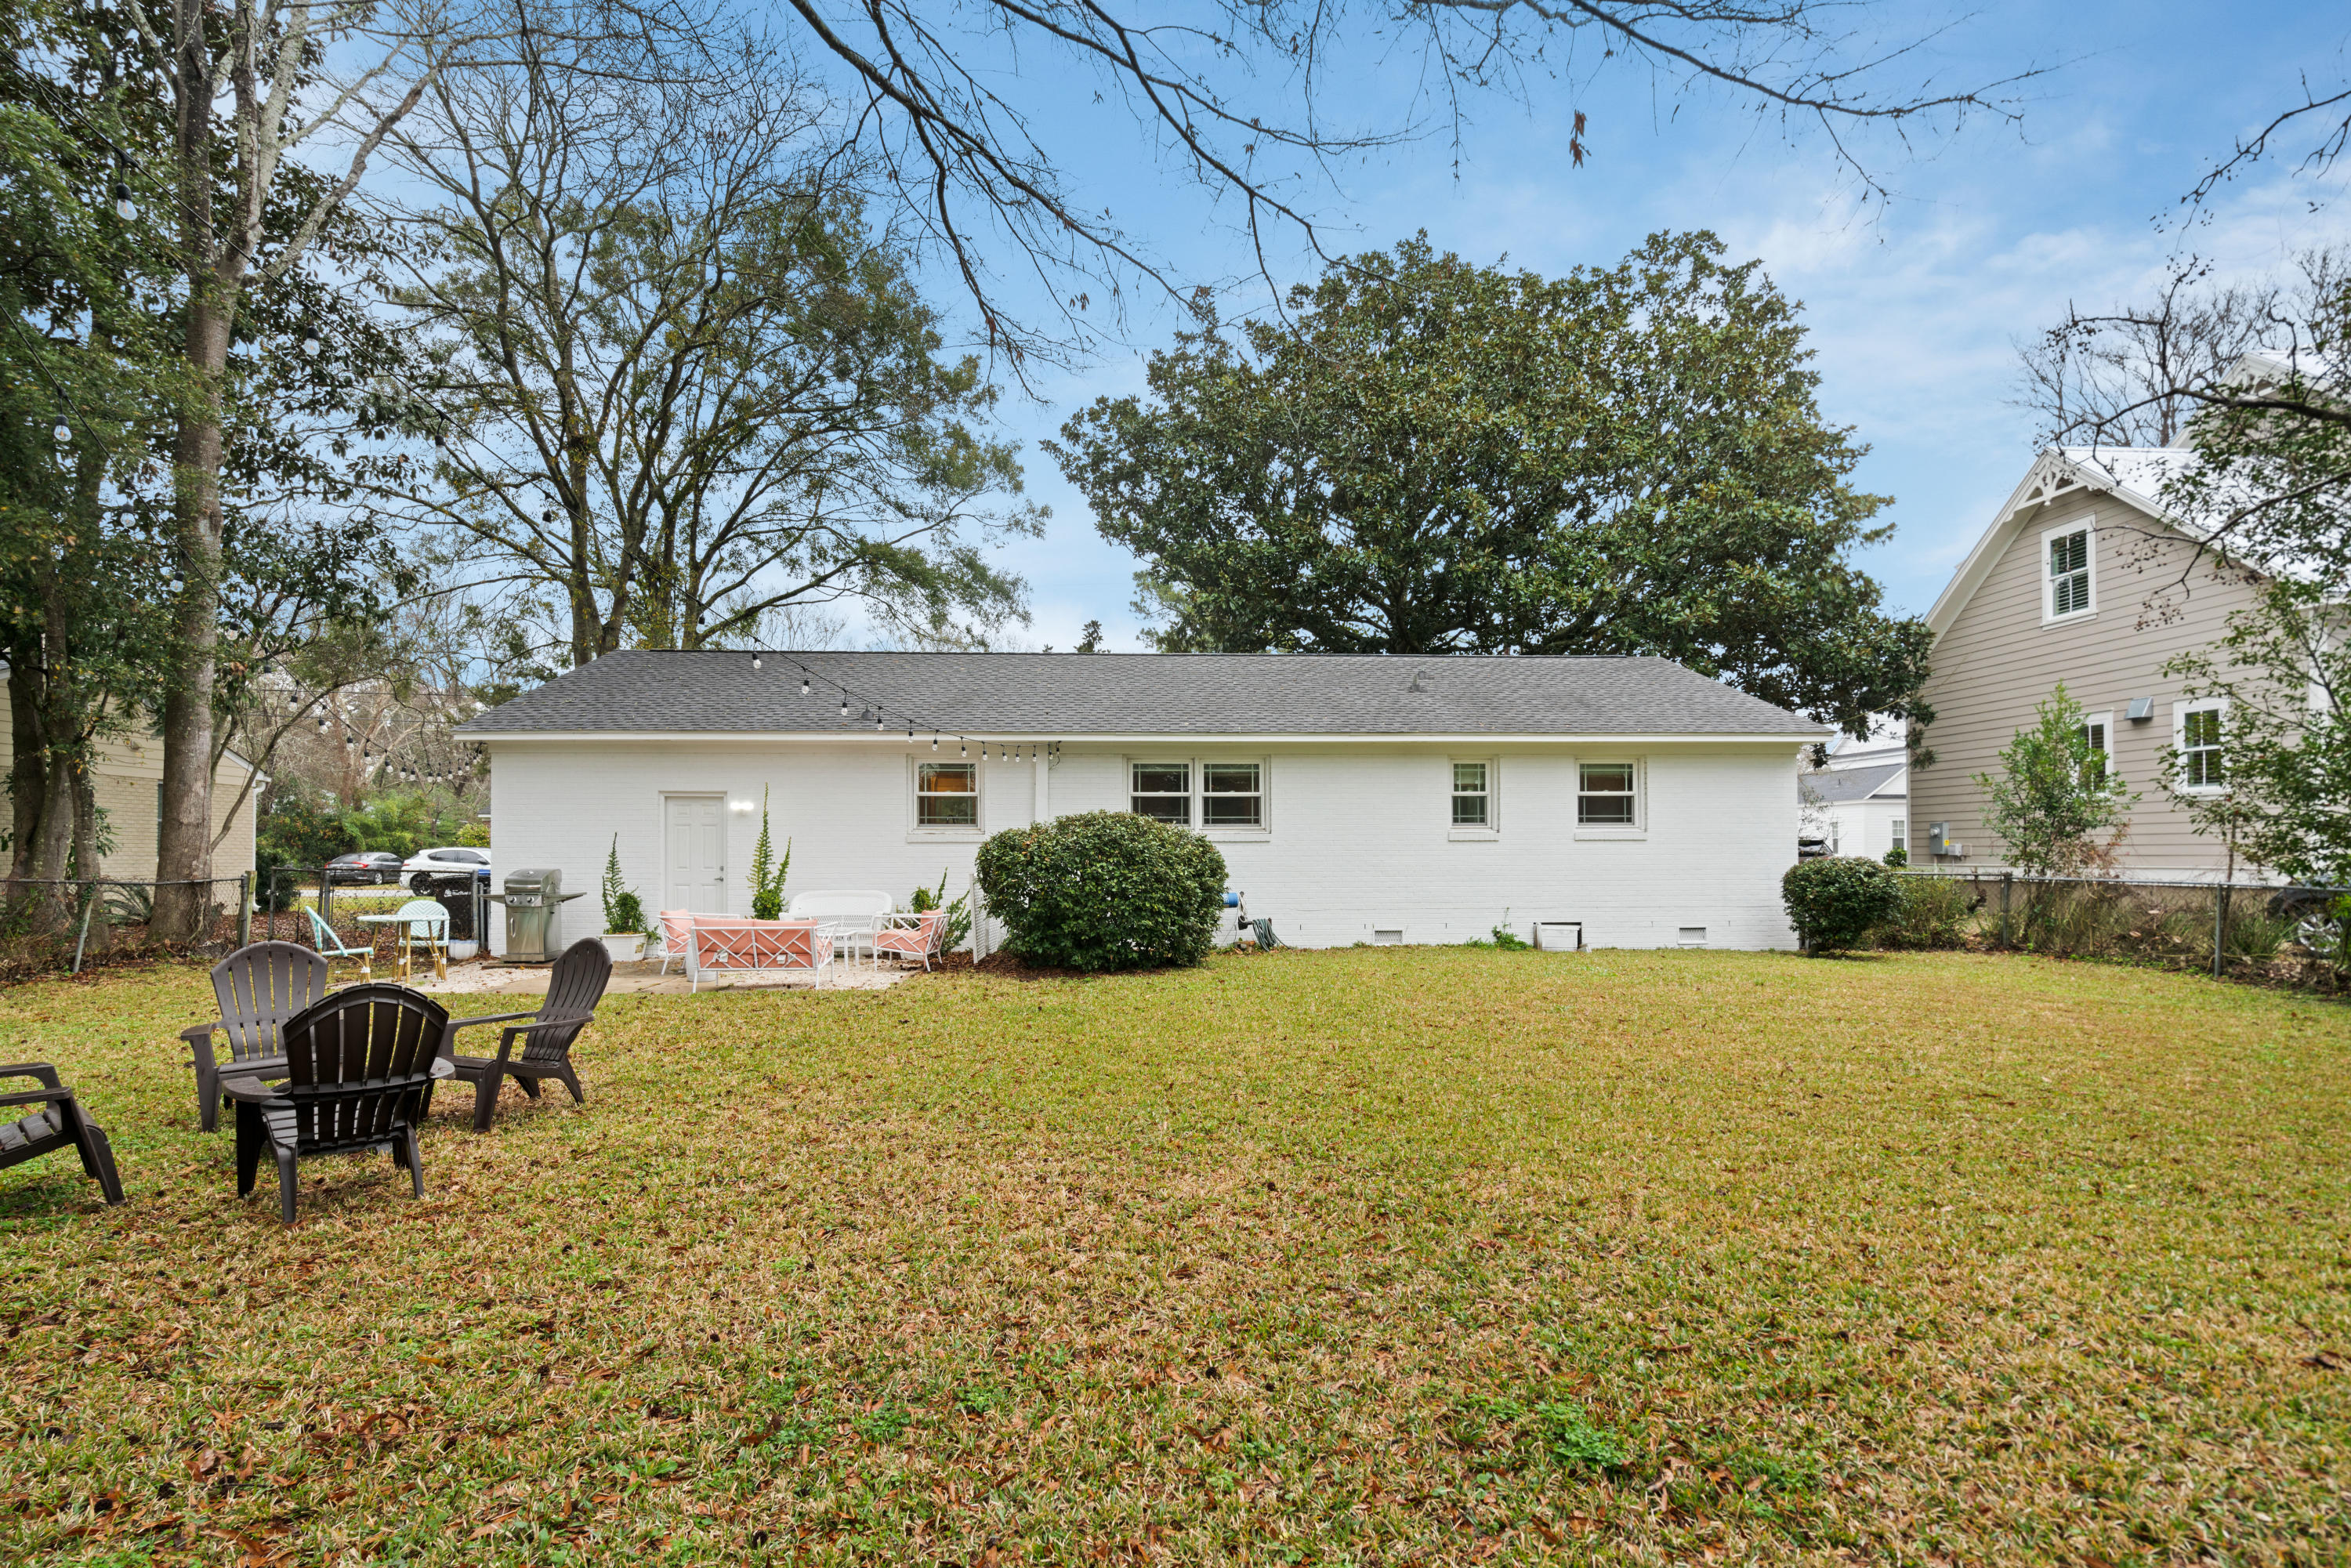 Old Mt Pleasant Homes For Sale - 1463 Mataoka, Mount Pleasant, SC - 5